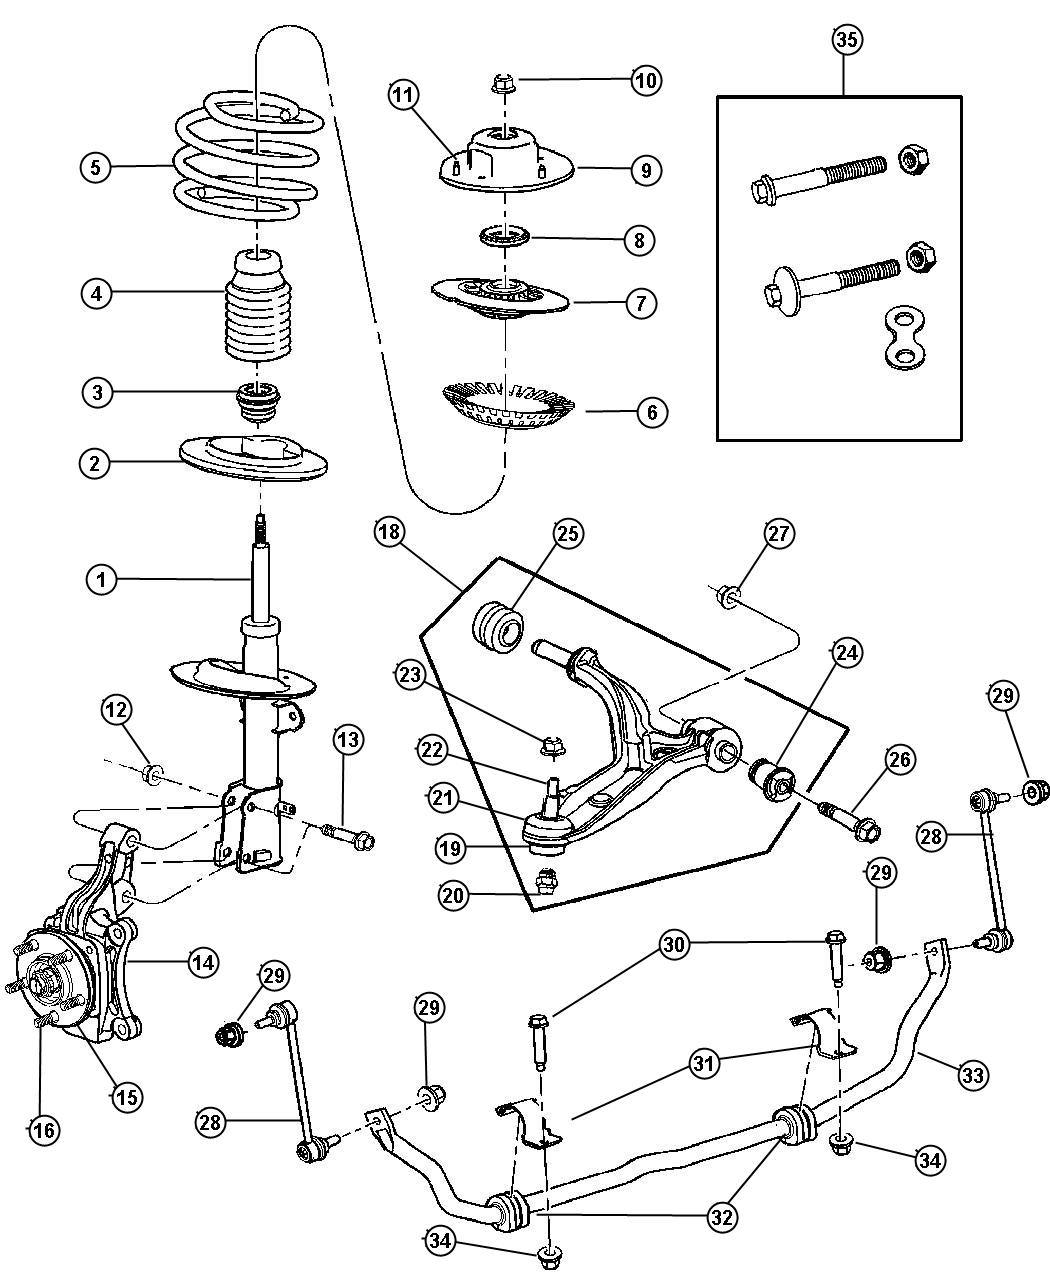 07 Dodge Grand Caravan Radio Wiring Diagrams 2002 Fuse Diagram Schematic Voyager Free Pictu Library Rh 37 Dreamnode Online 2001 2006